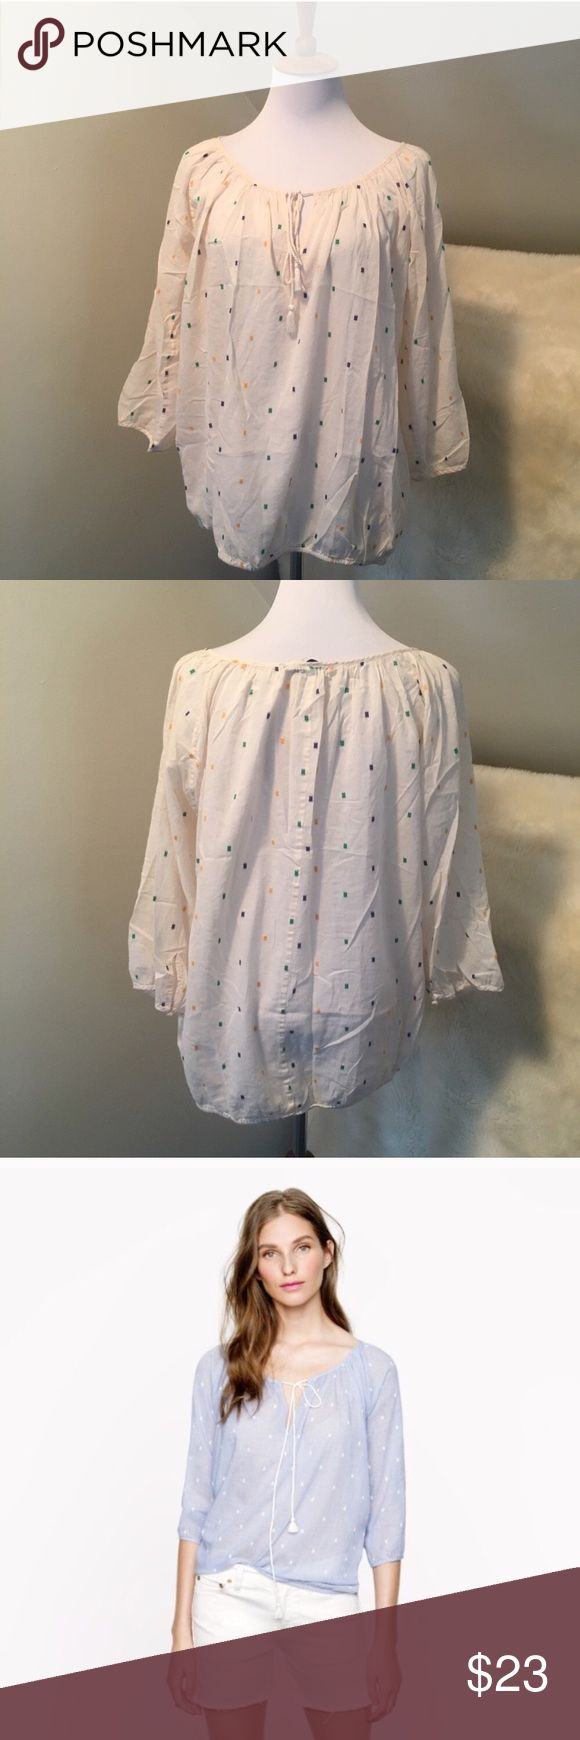 """J. CREW Chambray Square Dot Peasant Blouse Really pretty lightweight loose fitting cotton blouse. Elastic bottom and sleeves. Great condition. """"Dainty embroidered dots. It's perfected with tailored touches like mother-of-pearl buttons and a swingy little tassel at the neckline for the perfect mix of relaxed and refined. This top was designed to be worn as a beach cover-up—if you'd like to wear it as a top around town, we suggest sizing down."""" Bust is 22"""" across so it would be loose on a…"""